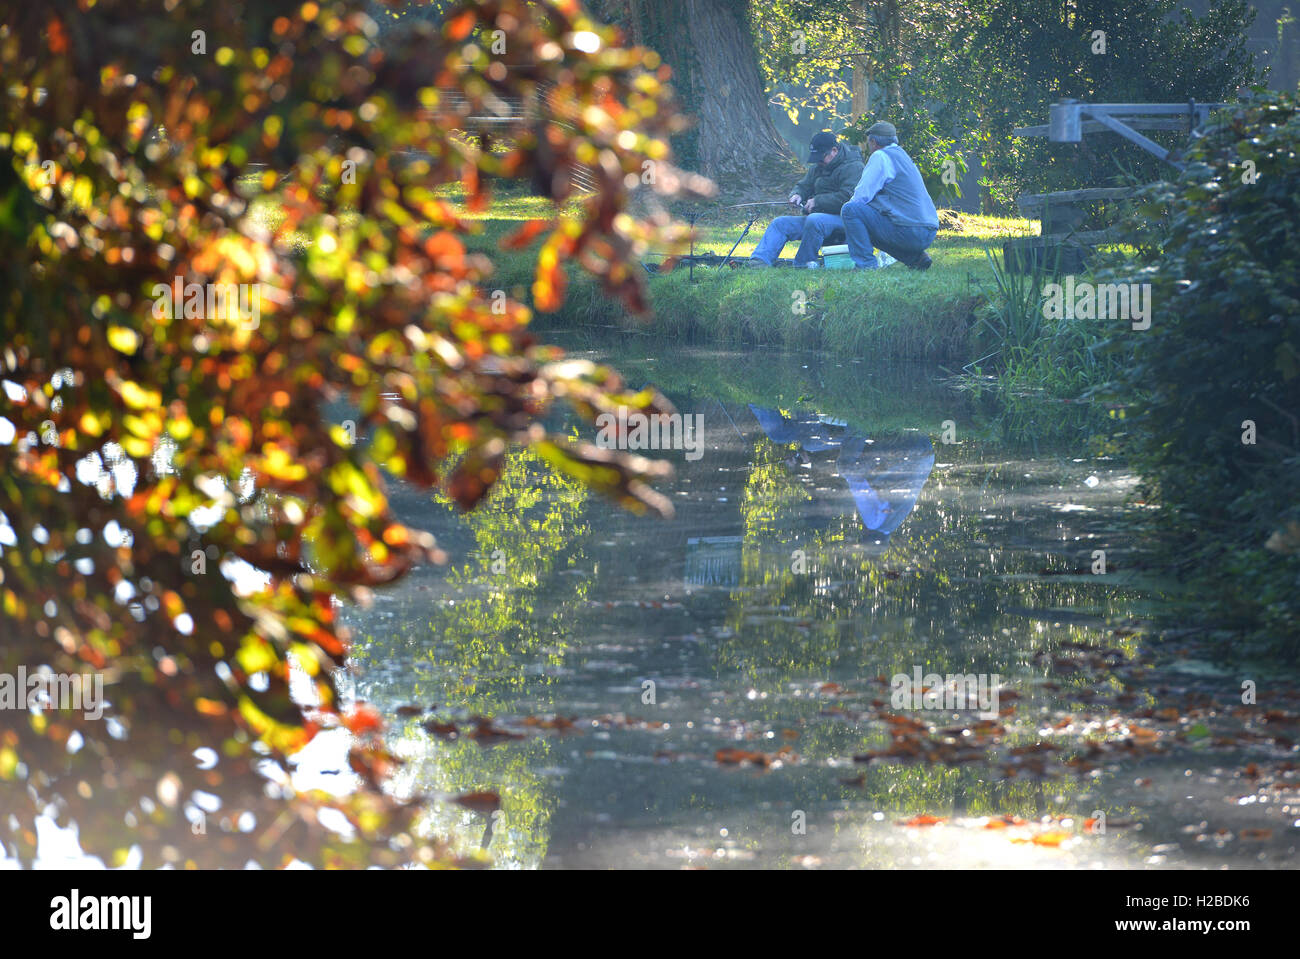 Fishing in late summer, Barcombe Mills, East Sussex Stock Photo